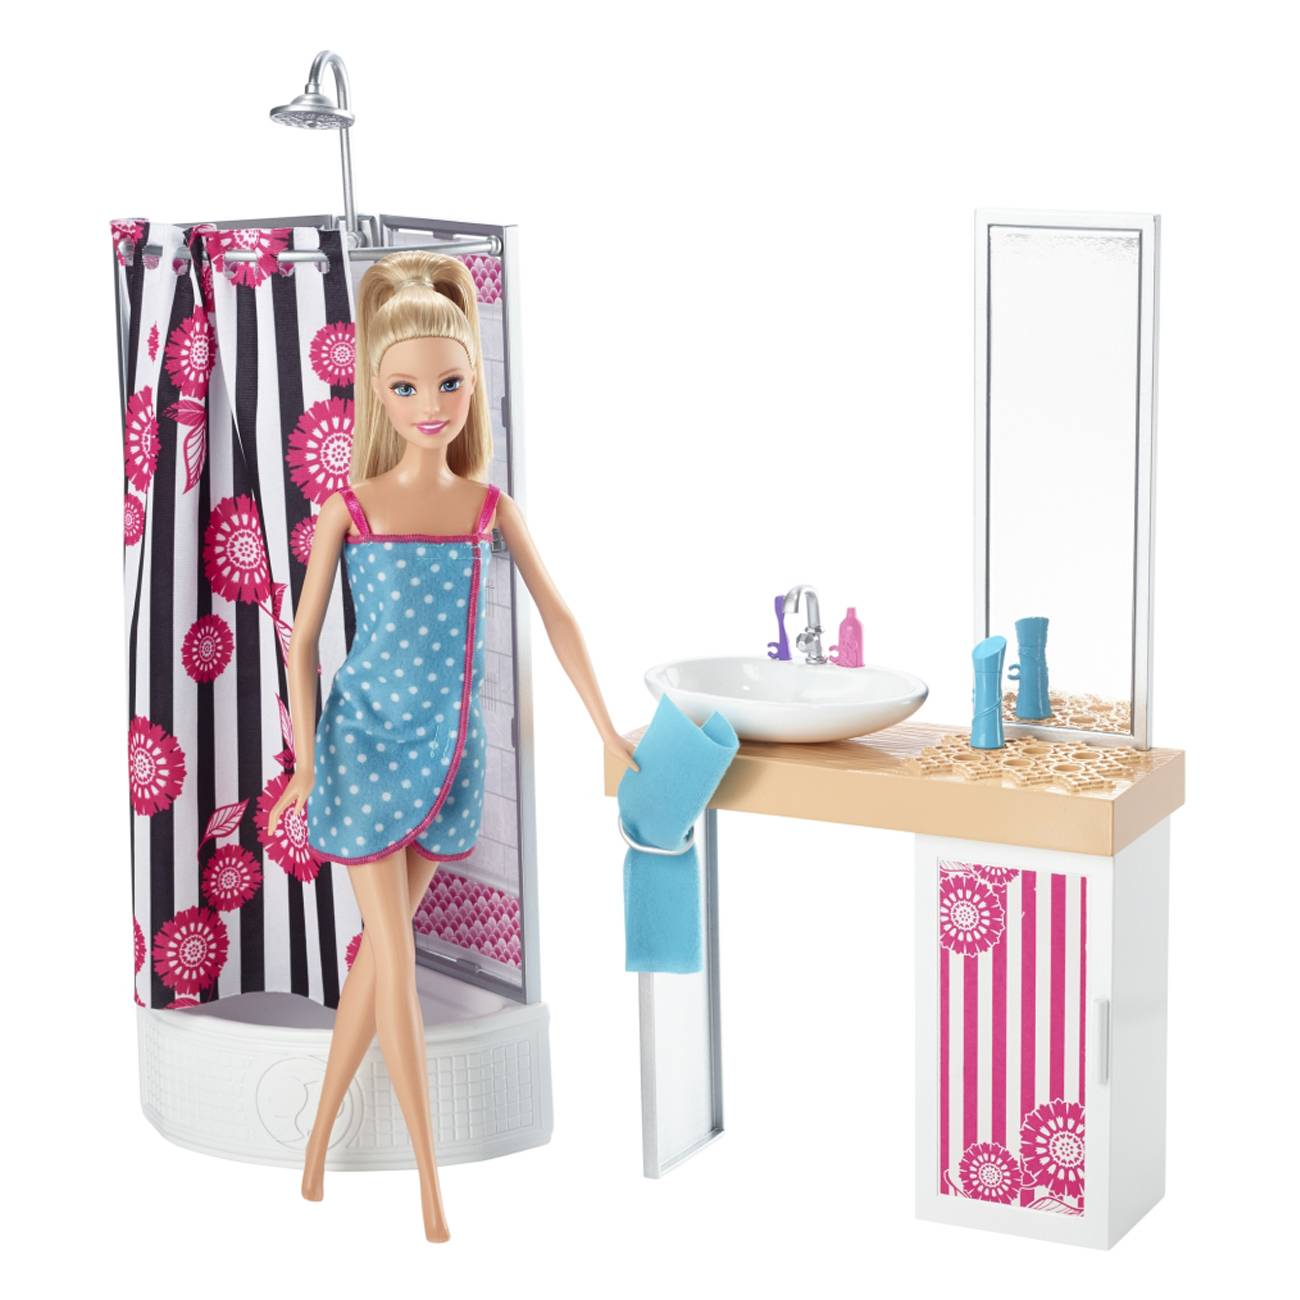 DOLL AND DELUXE BATHROOM